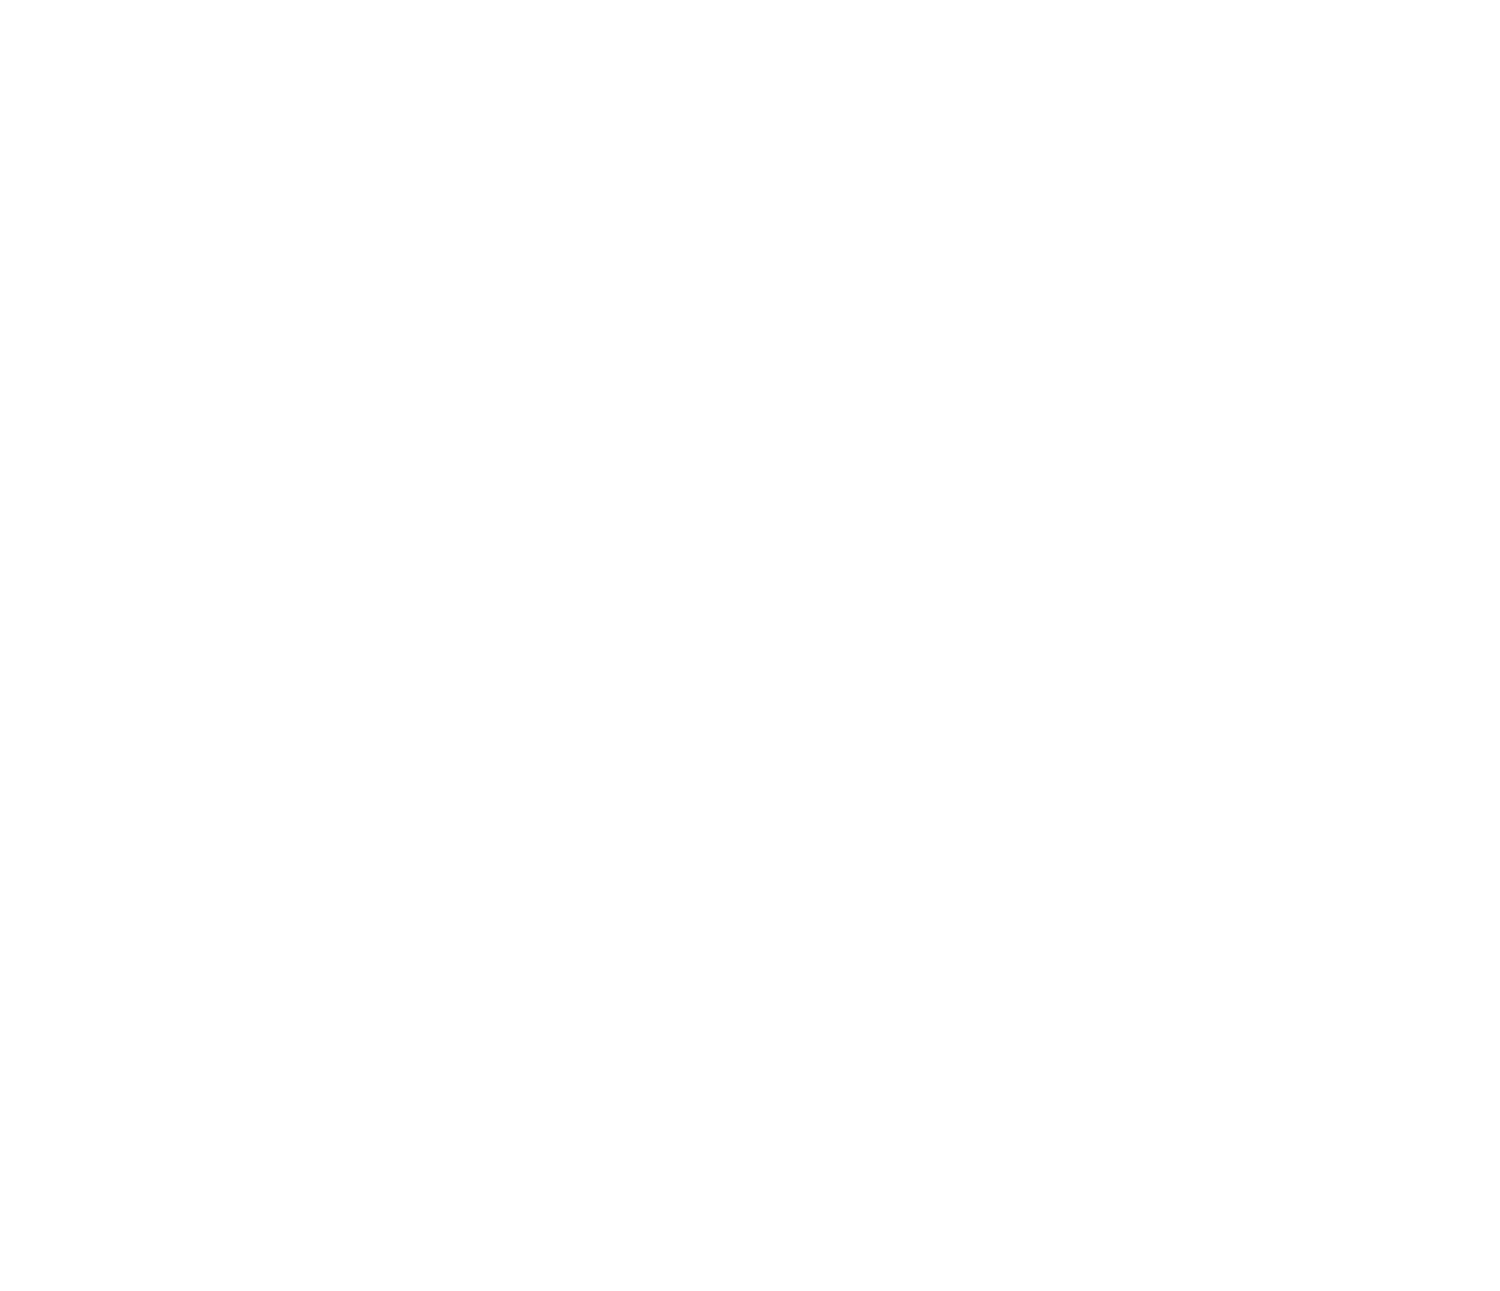 The Selfish Conservationist